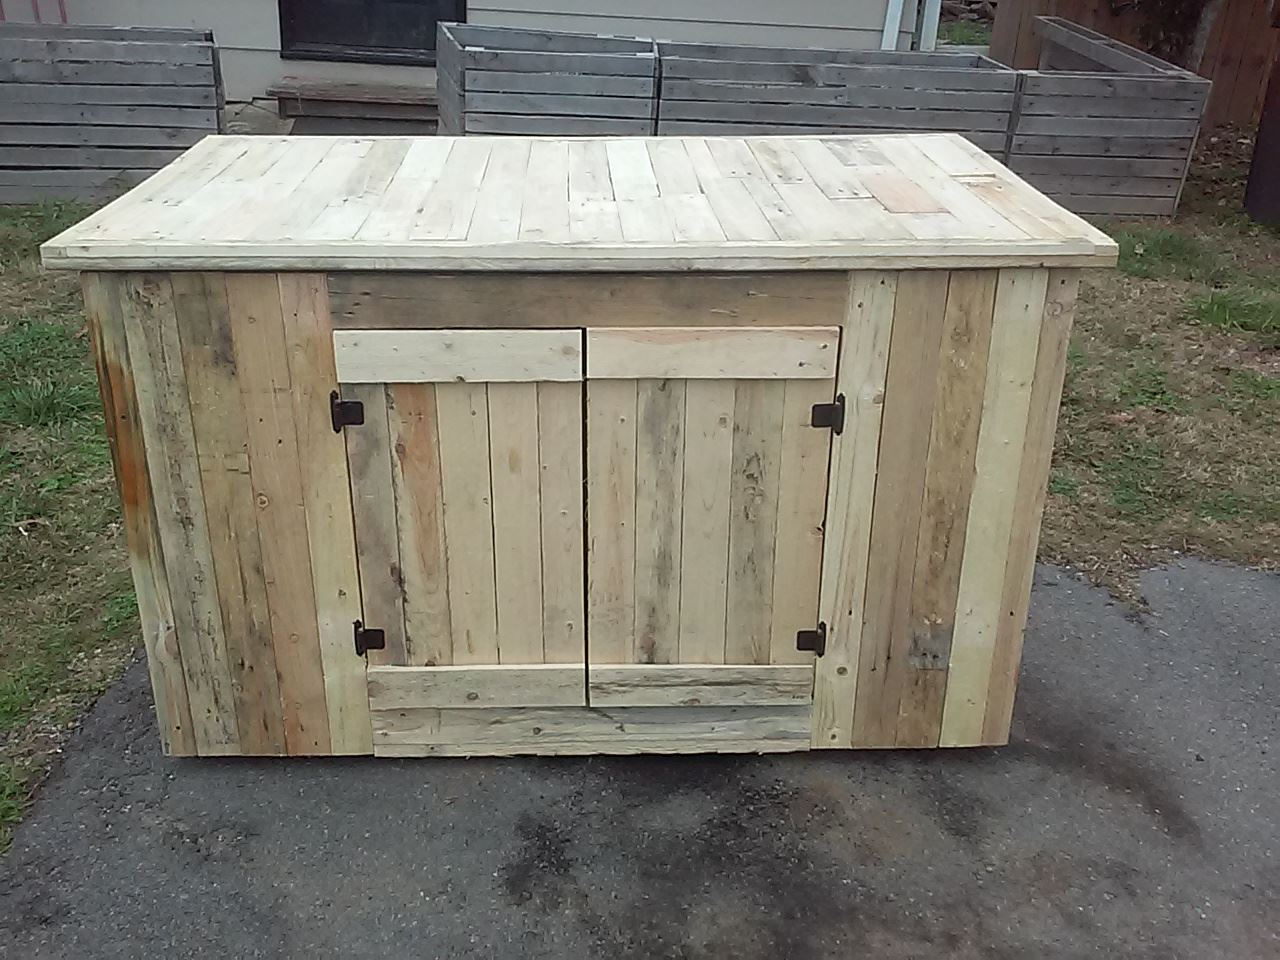 wooden pallet kitchen island with cabinets kitchen island cabinets Wooden Pallet Kitchen Island with Cabinets